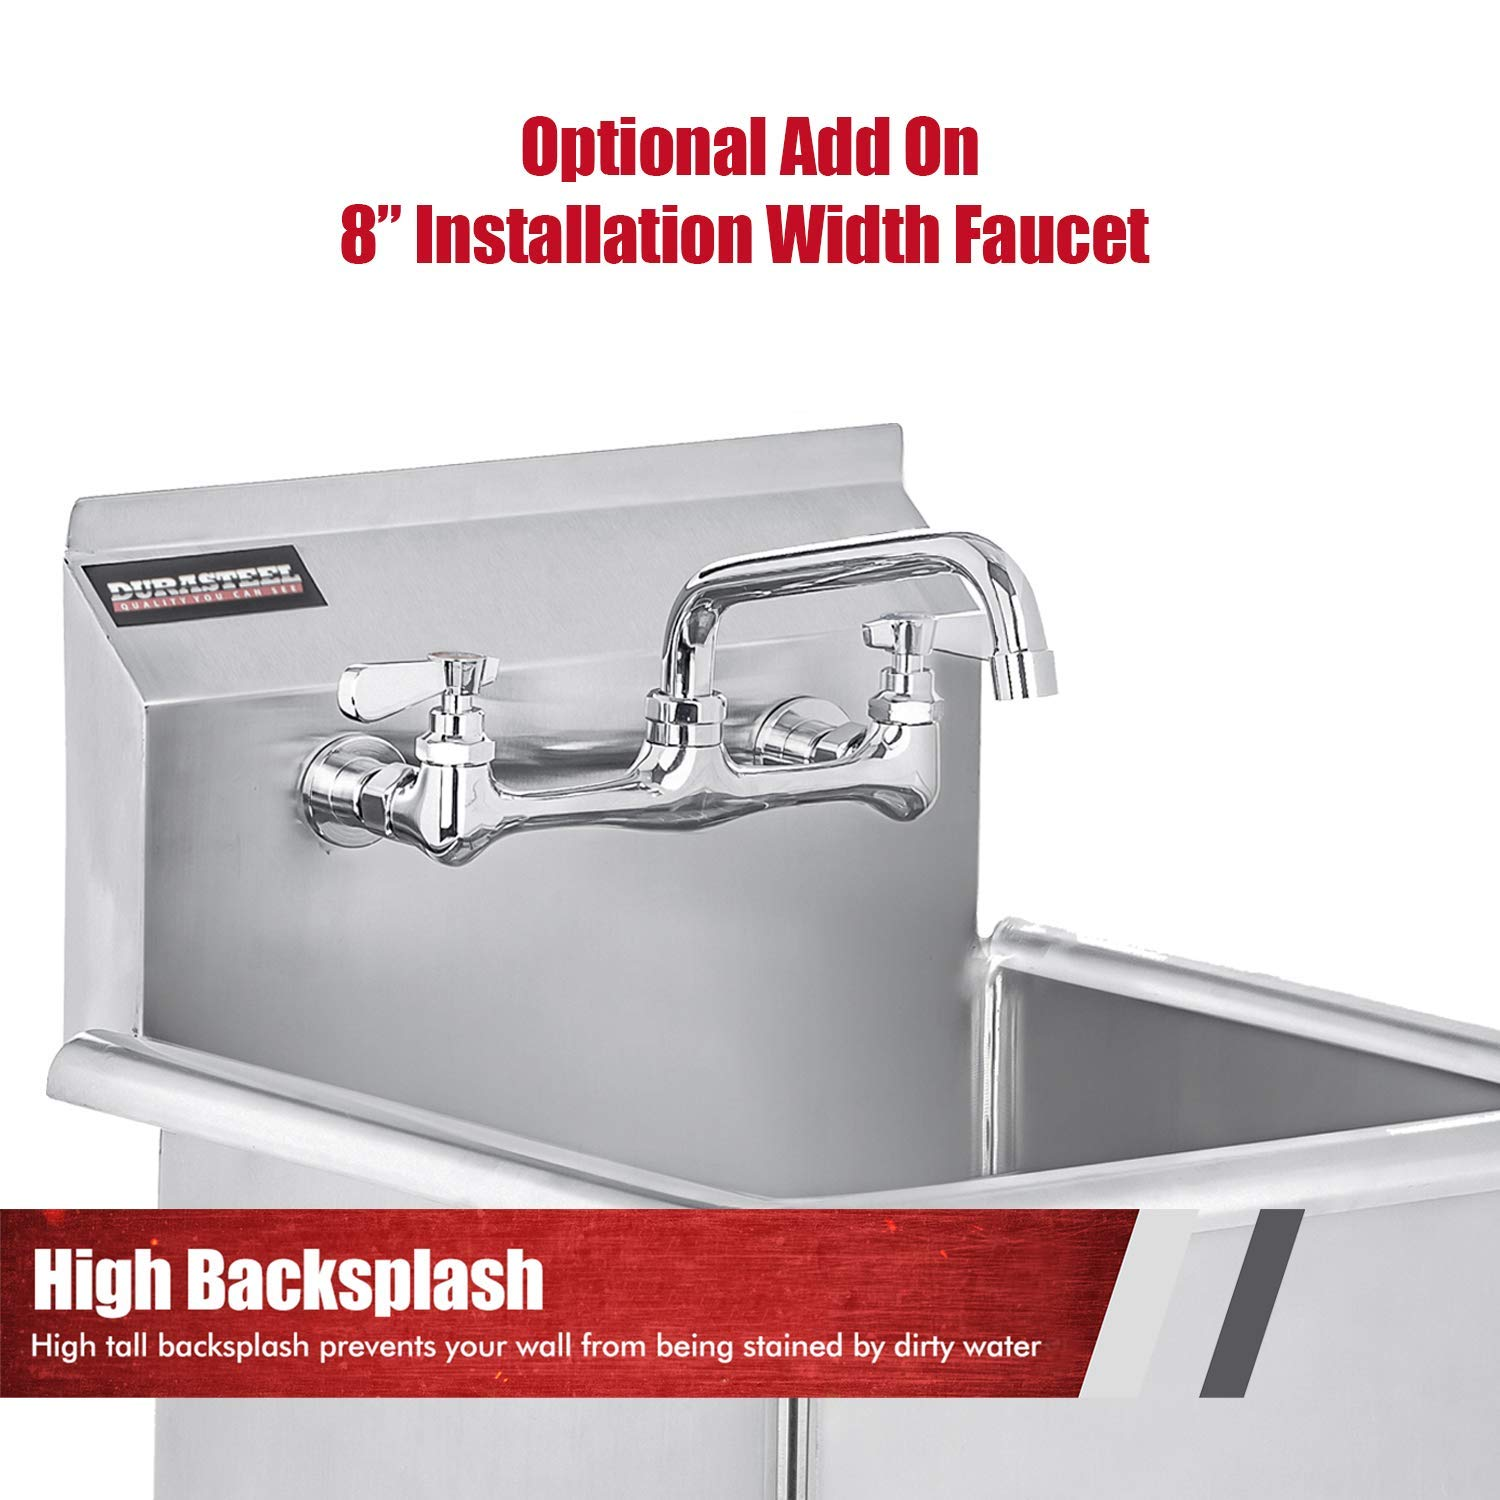 Buy Stainless Steel Prep Utility Sink Durasteel 1 Compartment Commercial Kitchen Sink Nsf Certified Single 24 X 24 Inner Tub With No Lead Faucet Restaurant Kitchen Laundry Garage Online In Turkey B01igao2zo